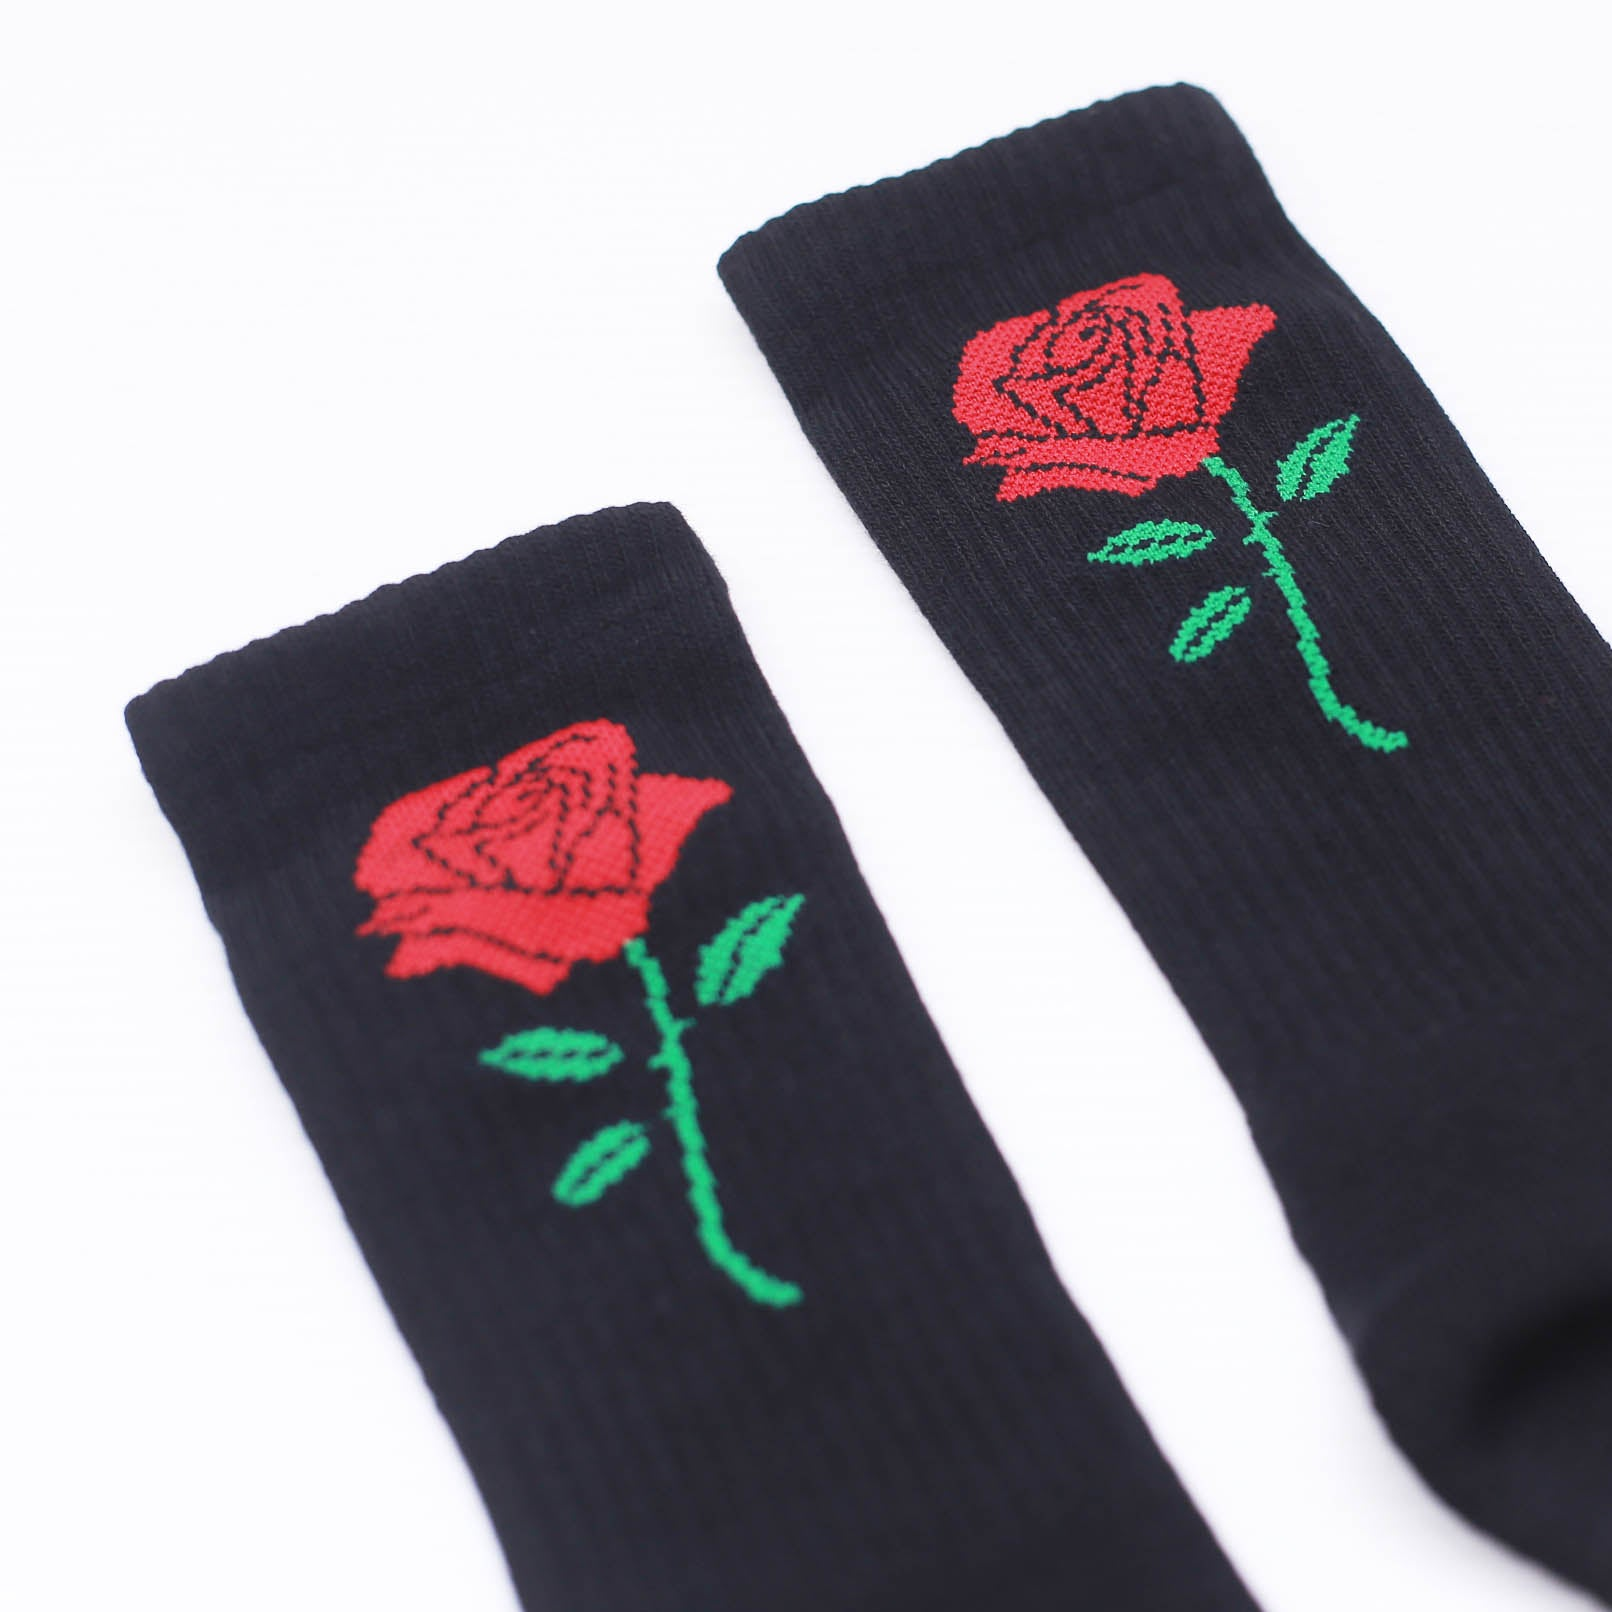 TKSB - Rose Black Socks - Wheel Love Skateshop